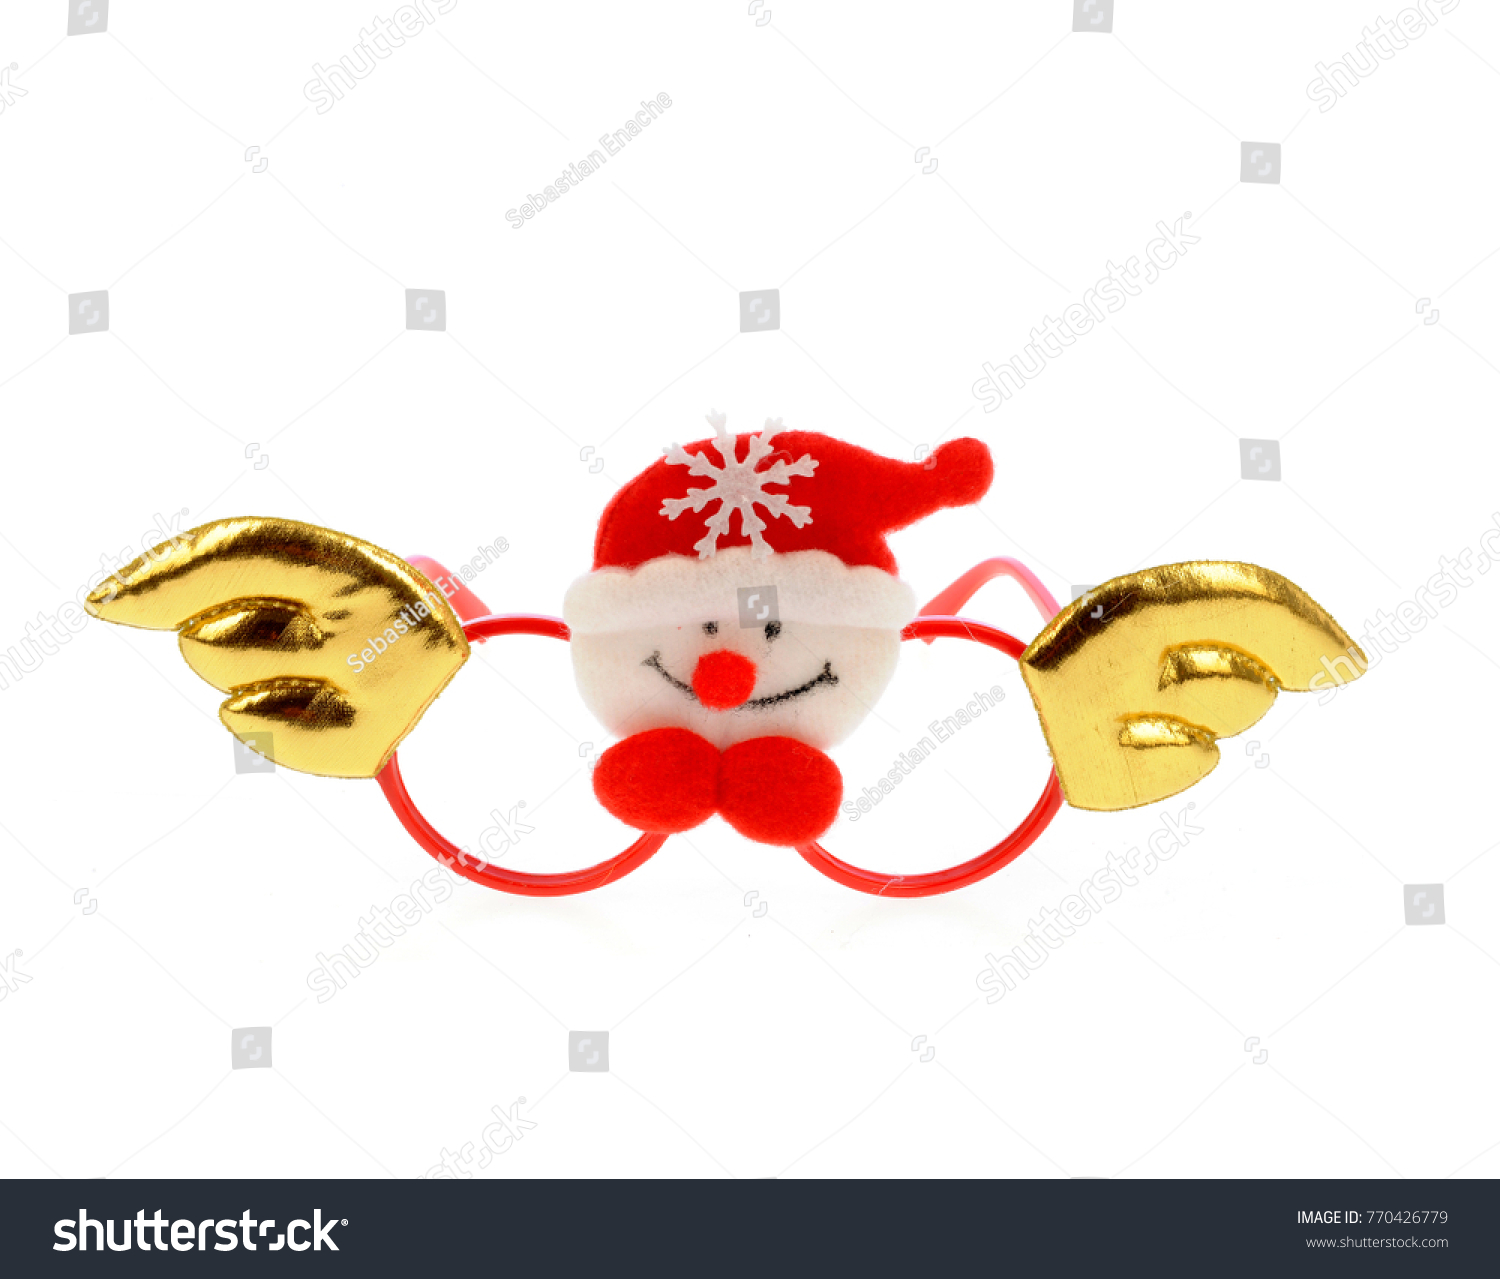 Funny Frames Glasses Christmas Decor Isolated Stock Photo (Royalty ...